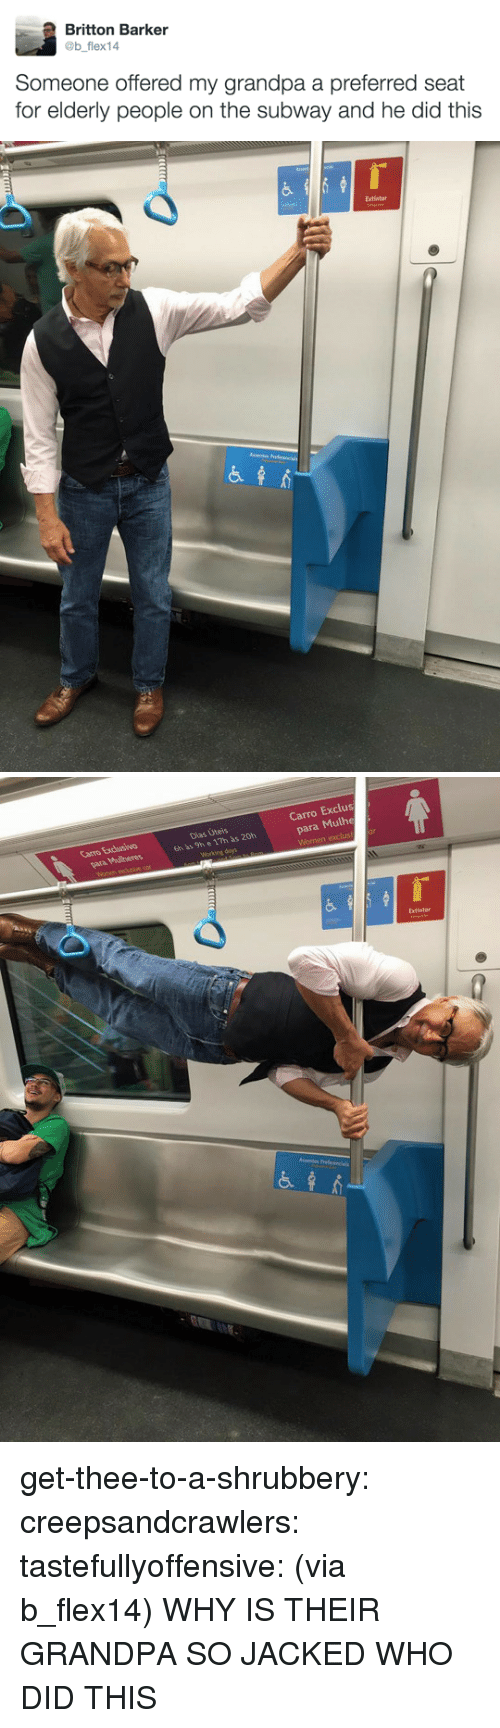 Bilbo, Subway, and Target: Britton Barker  @b flex14  Someone offered my grandpa a preferred seat  for elderly people on the subway and he did this   Extintor   Carro Exclus  para Mulhe  Carro Excusivo  Dias Úteis  6h às 9h e 17h às 20h  Extintor get-thee-to-a-shrubbery:  creepsandcrawlers:  tastefullyoffensive:  (via b_flex14)  WHY IS THEIR GRANDPA SO JACKED WHO DID THIS